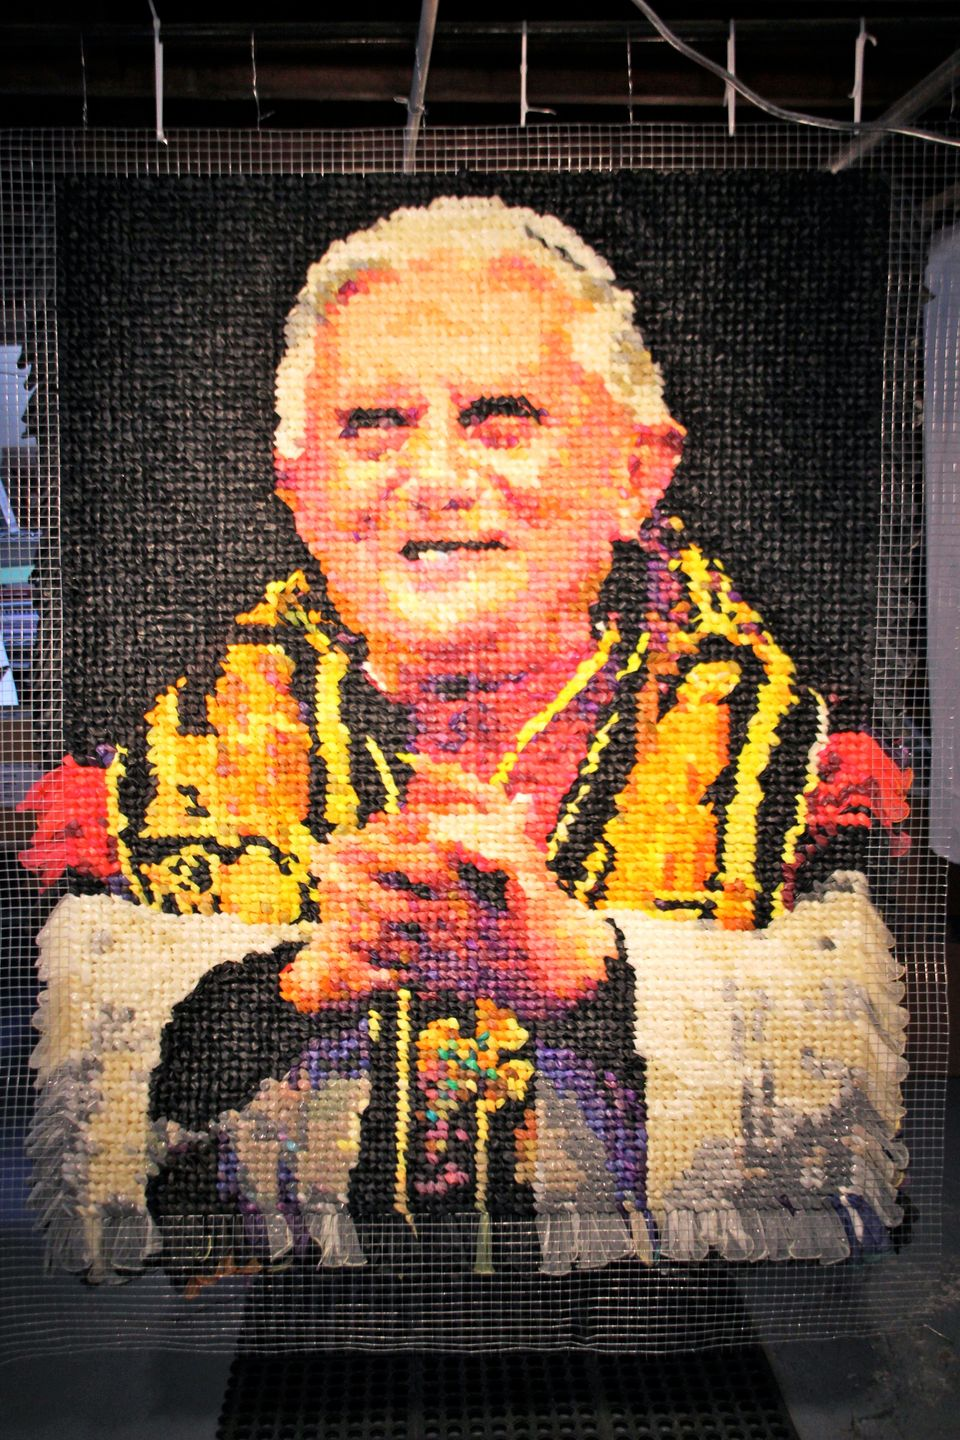 "<a href=""http://shorewood.patch.com/articles/a-prophylactic-portrait-of-the-pope#photo-13726089"" target=""_blank"">Adam W. McCo"